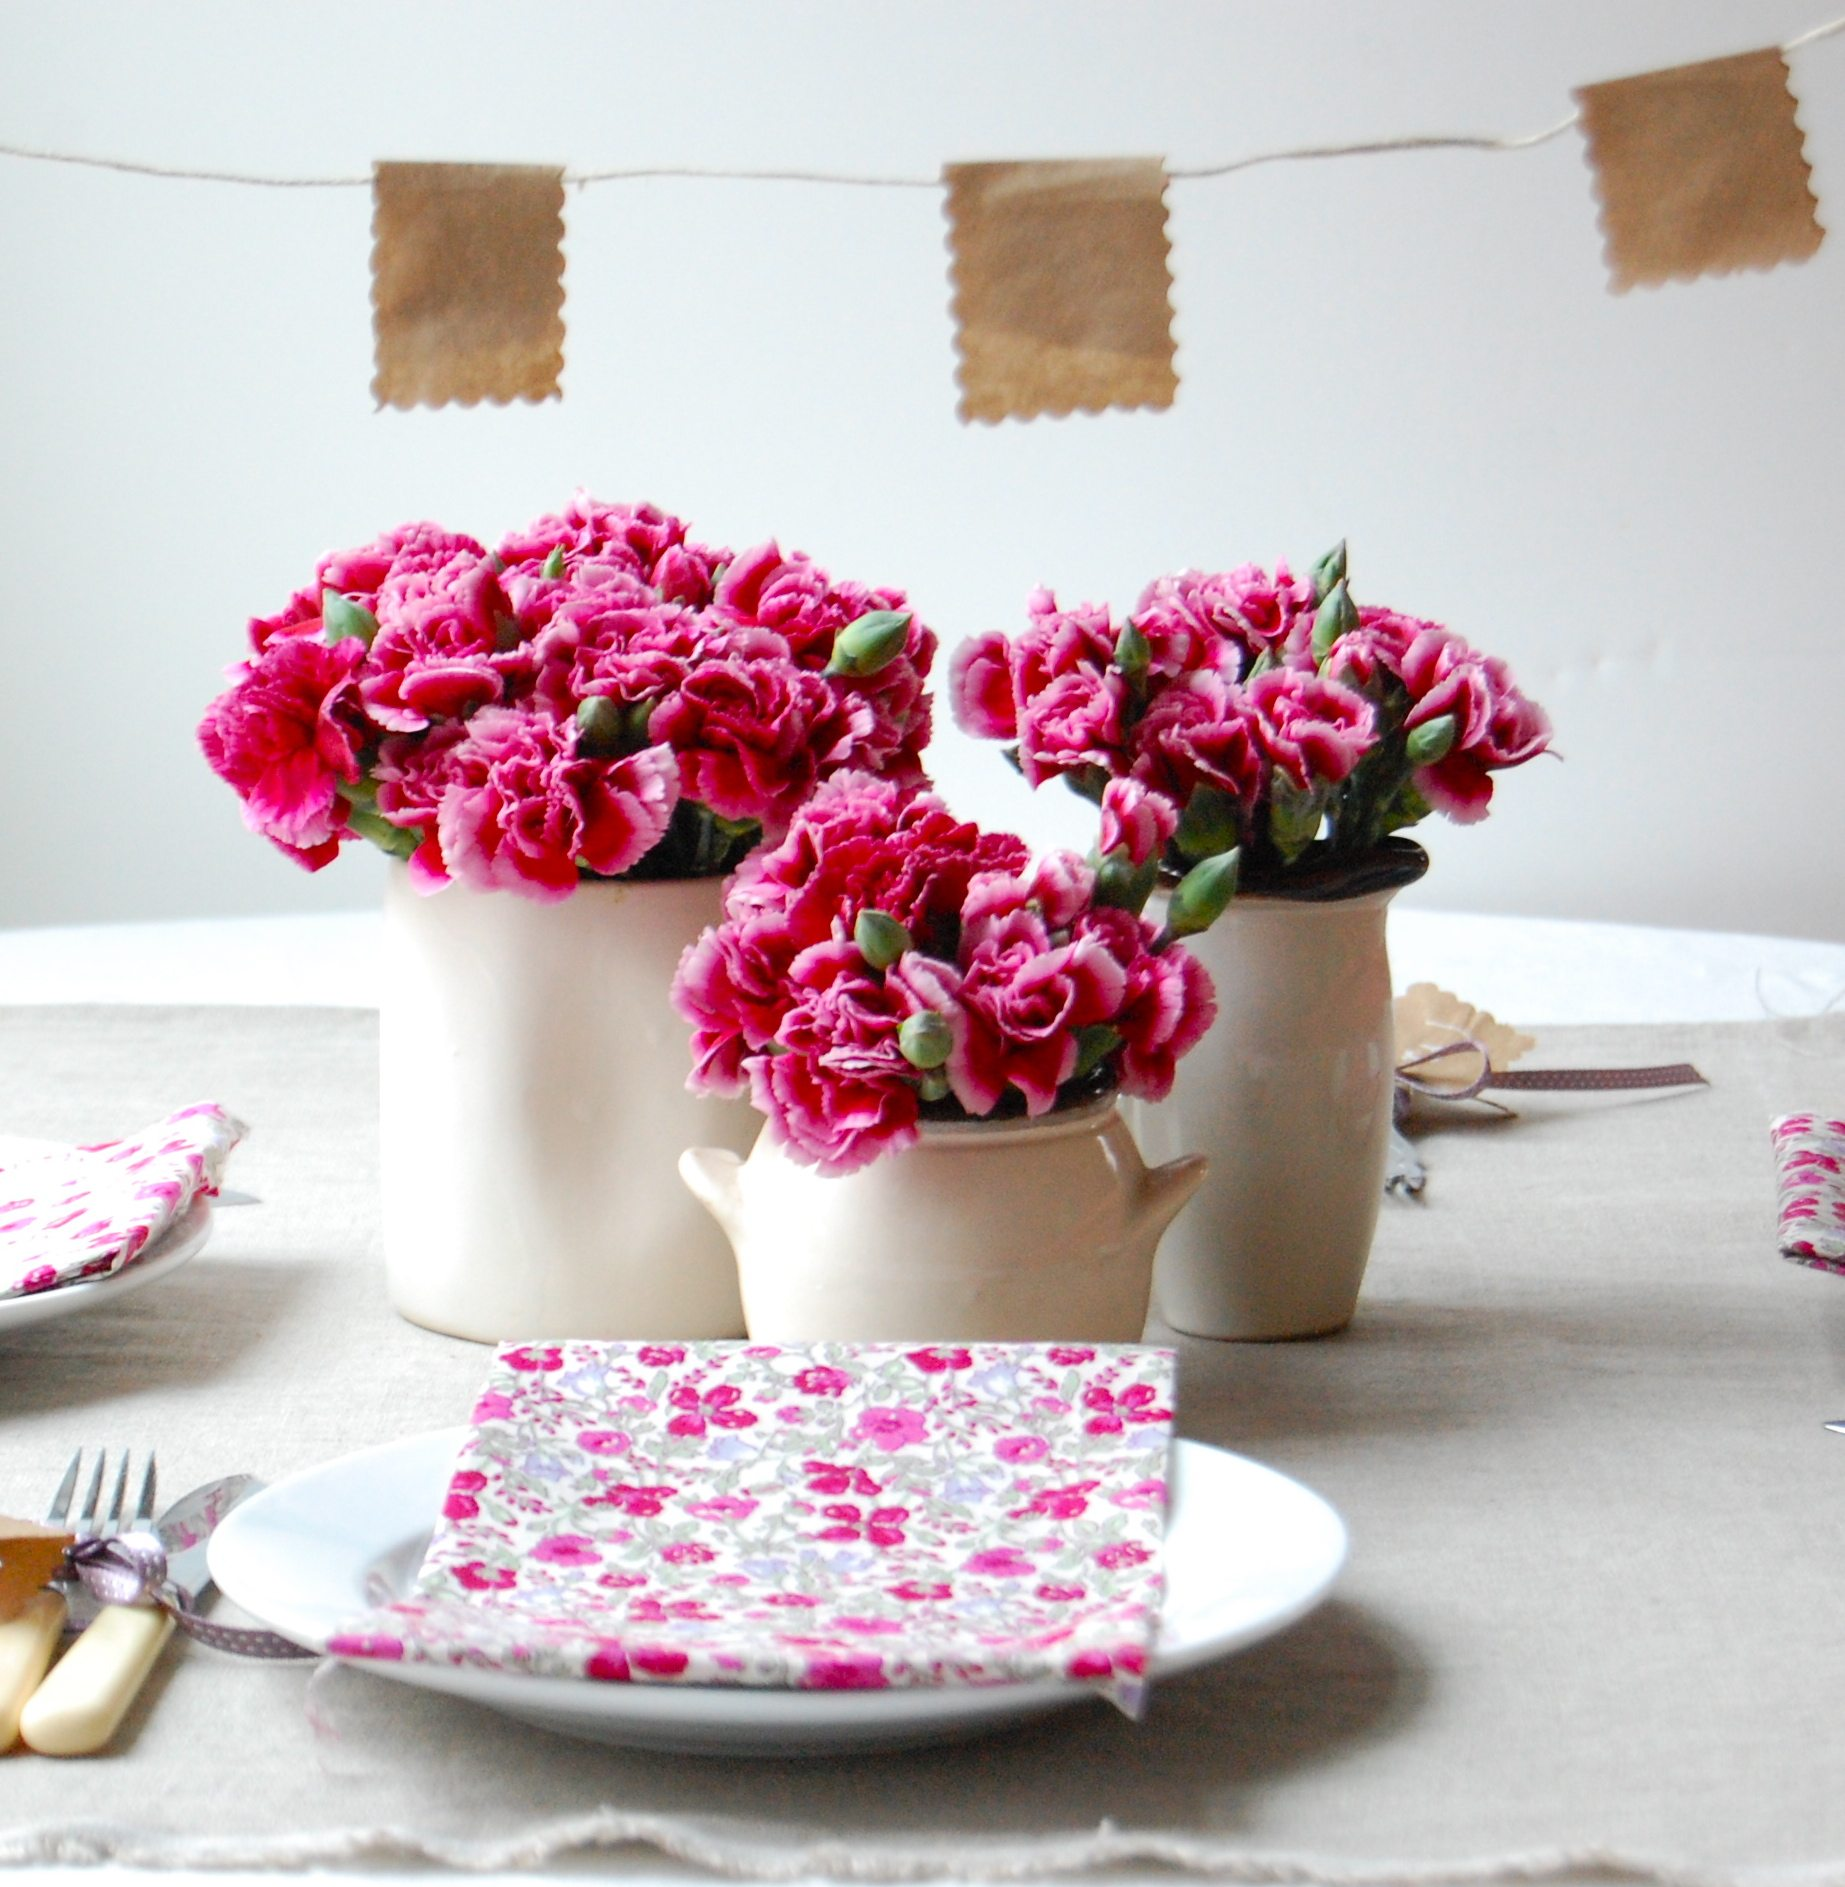 Budget friendly wedding centerpieces from chelsea fuss